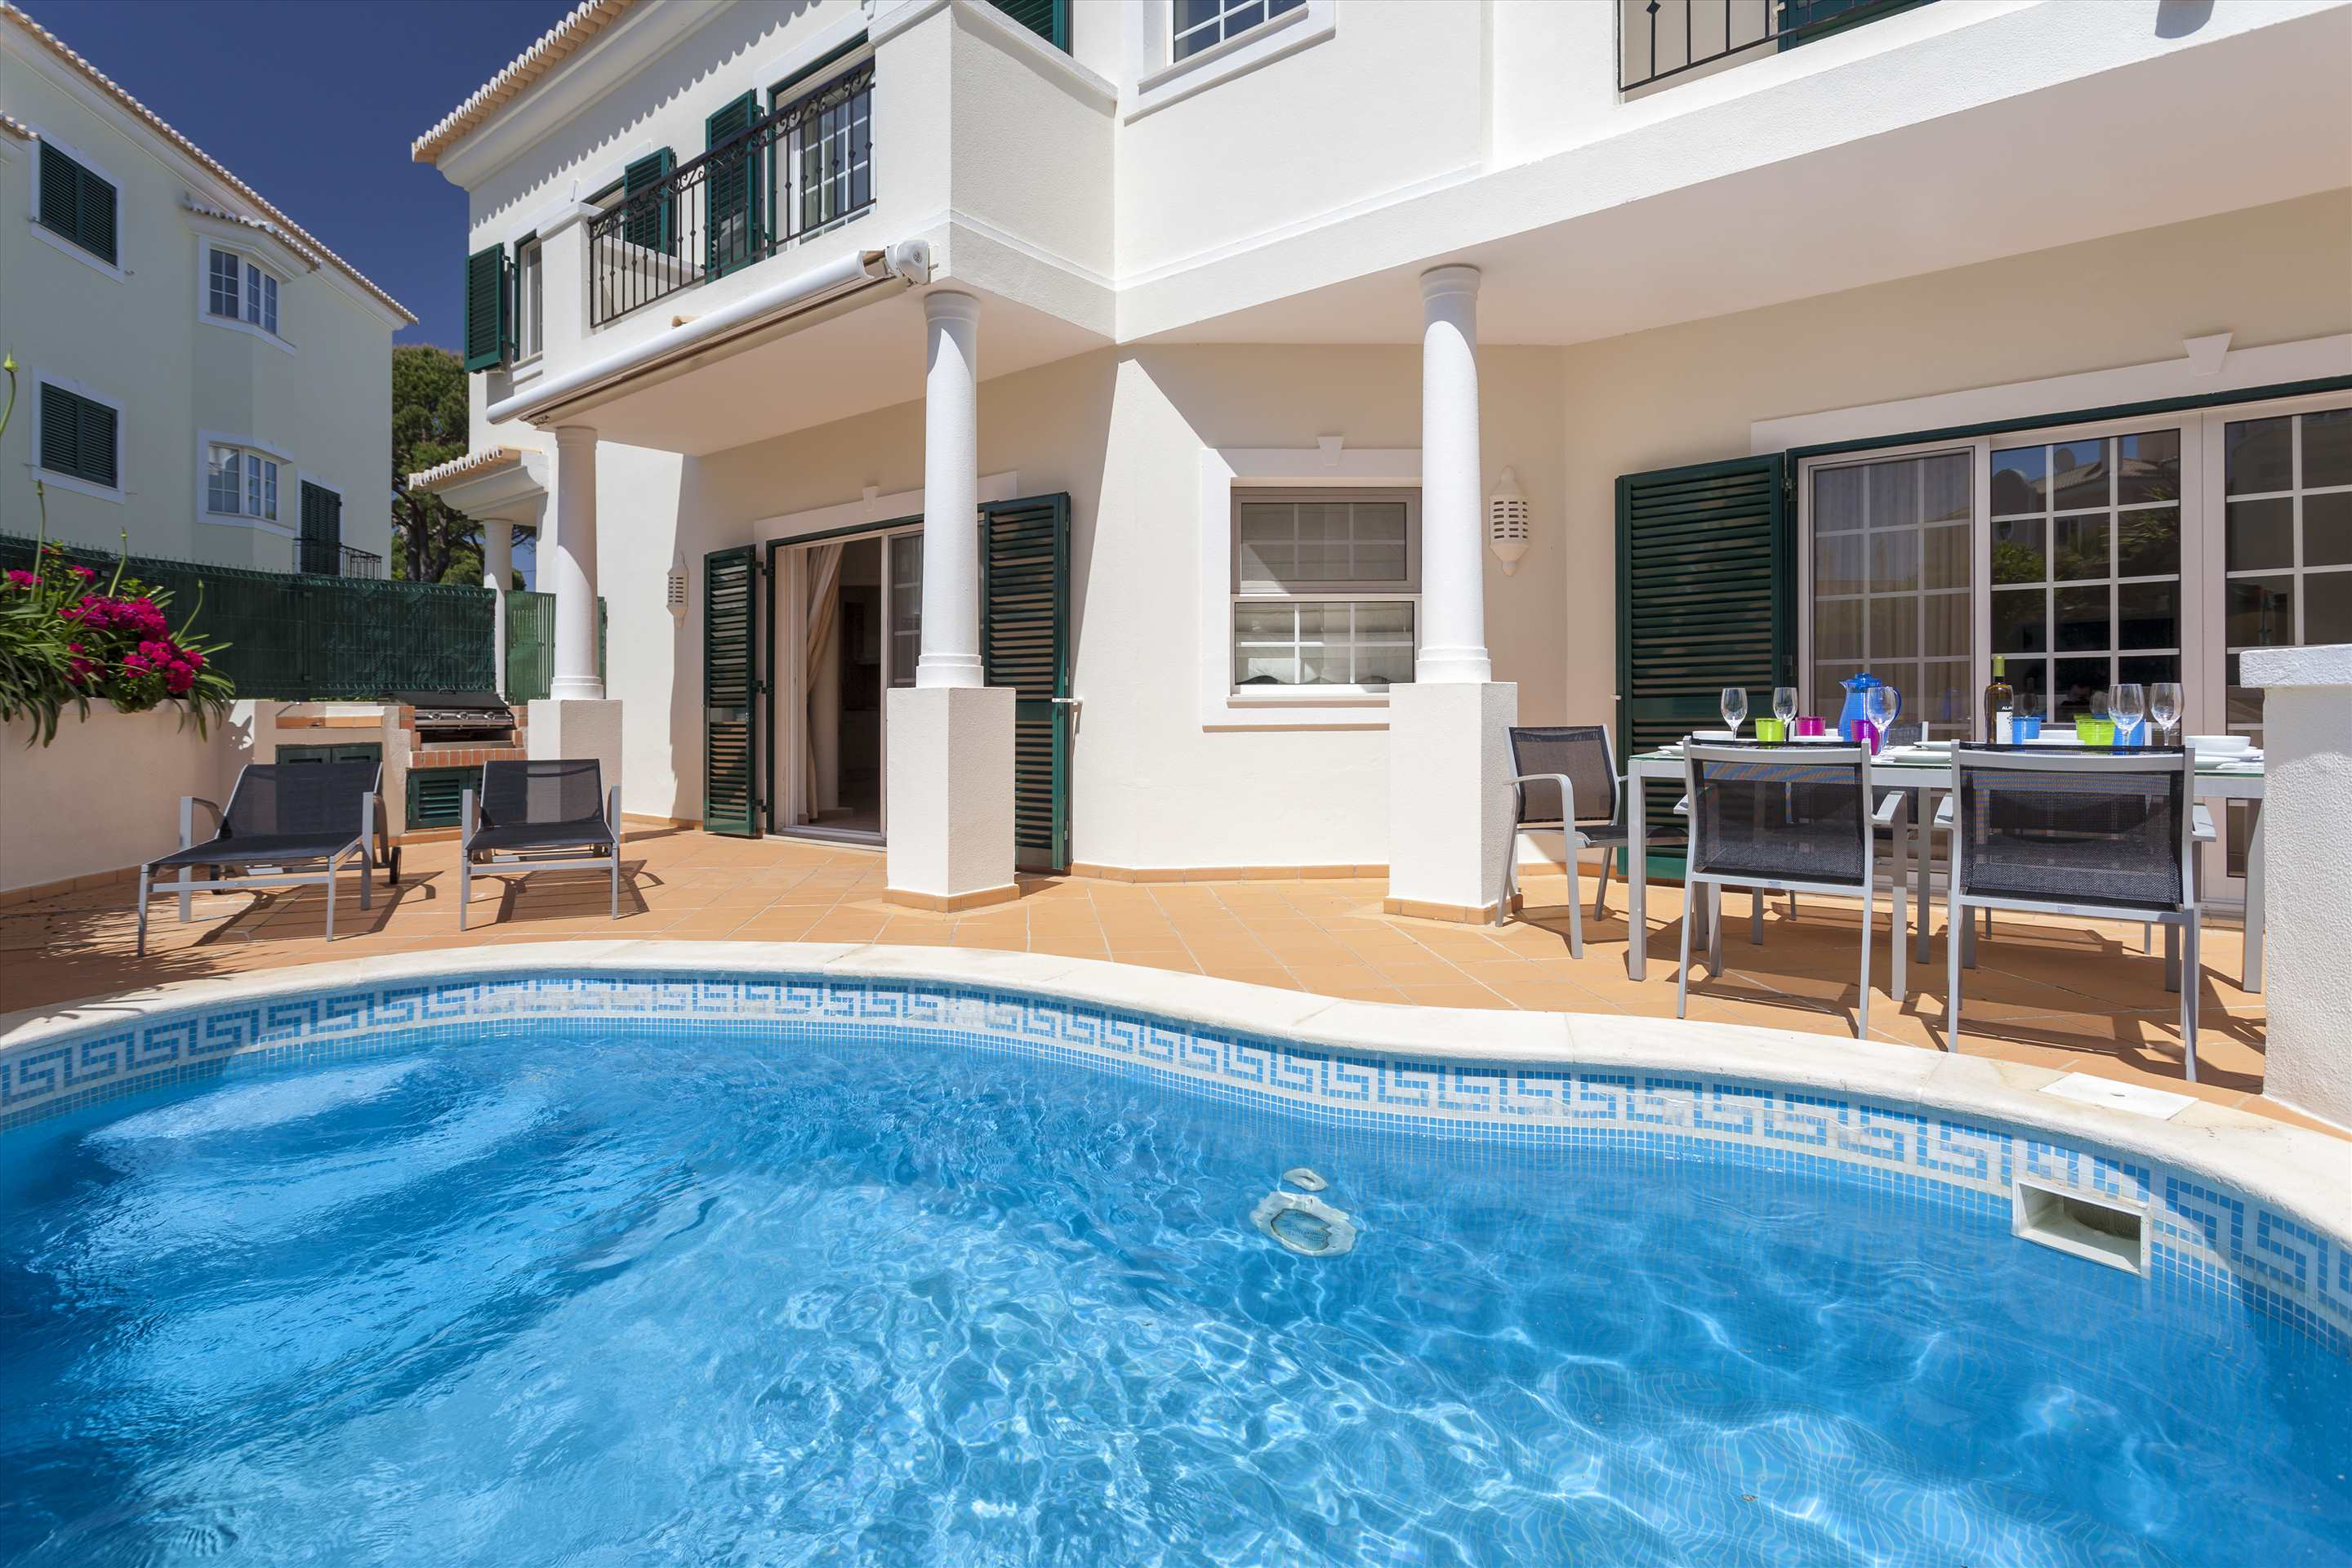 Villa Catarina, 3 bedroom apartment in Vale do Lobo, Algarve Photo #1